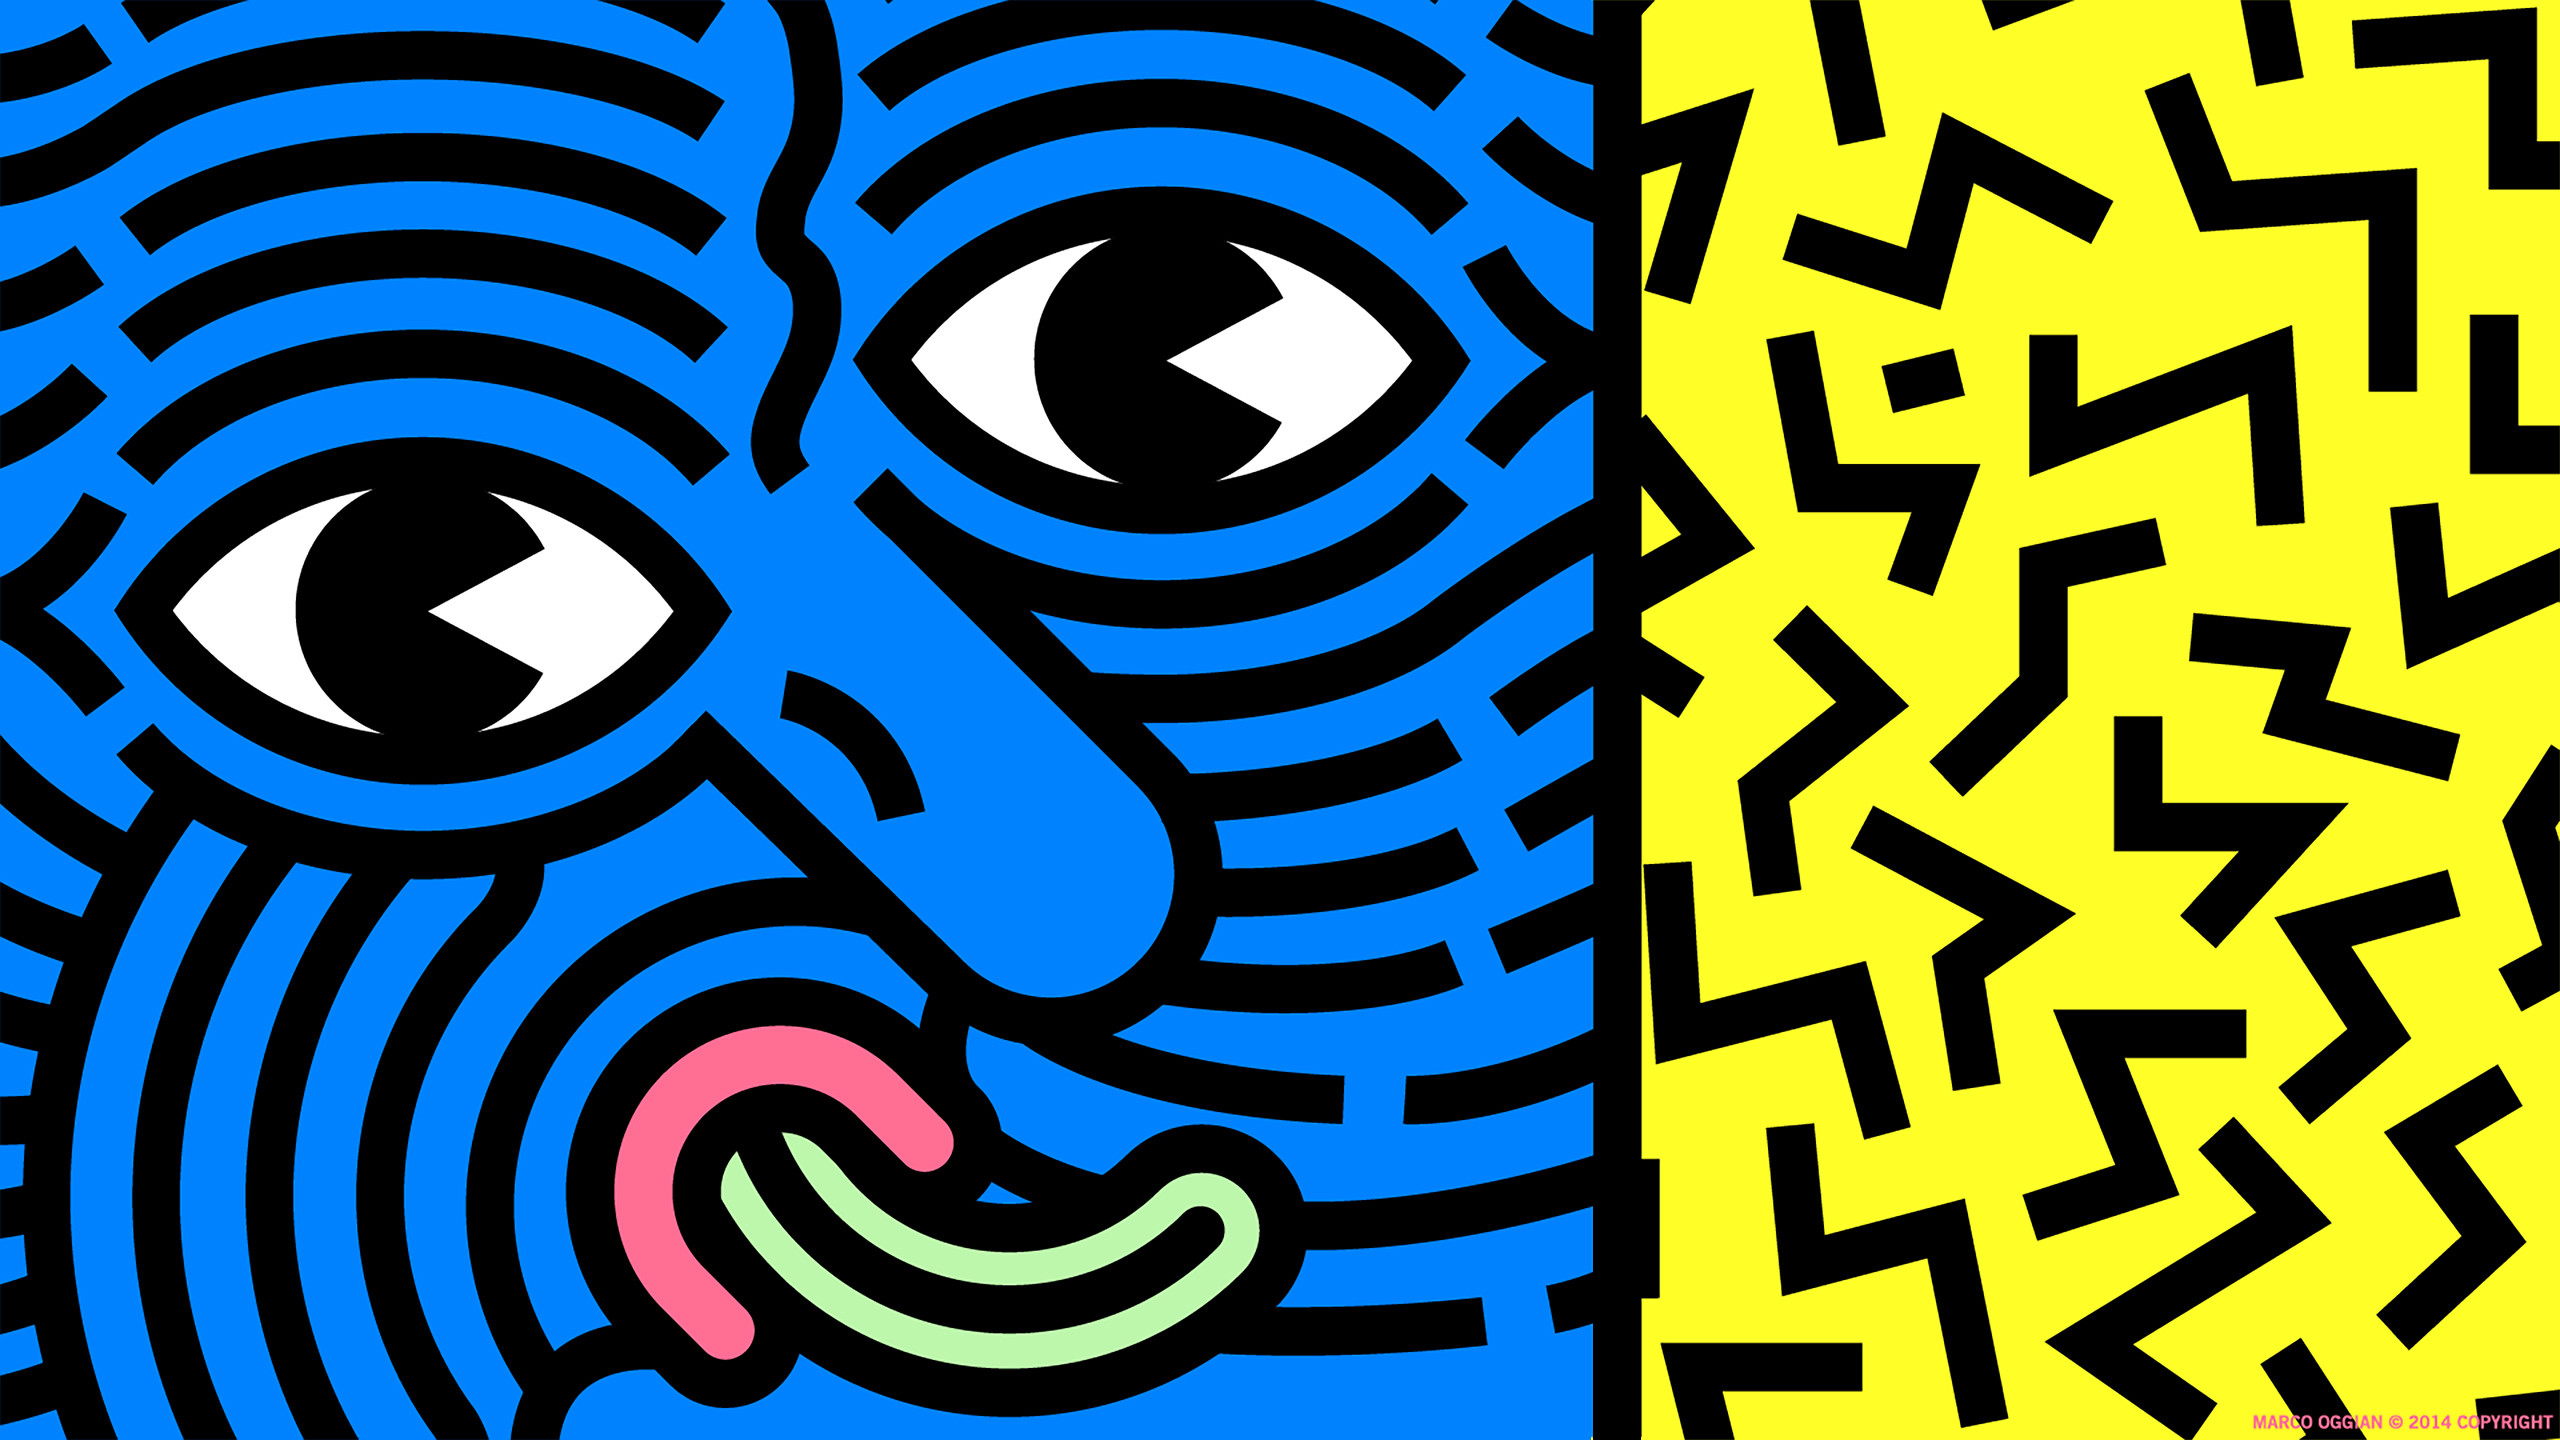 Iphone Wallpaper Pinterest Keith Haring Wallpapers 52 Images